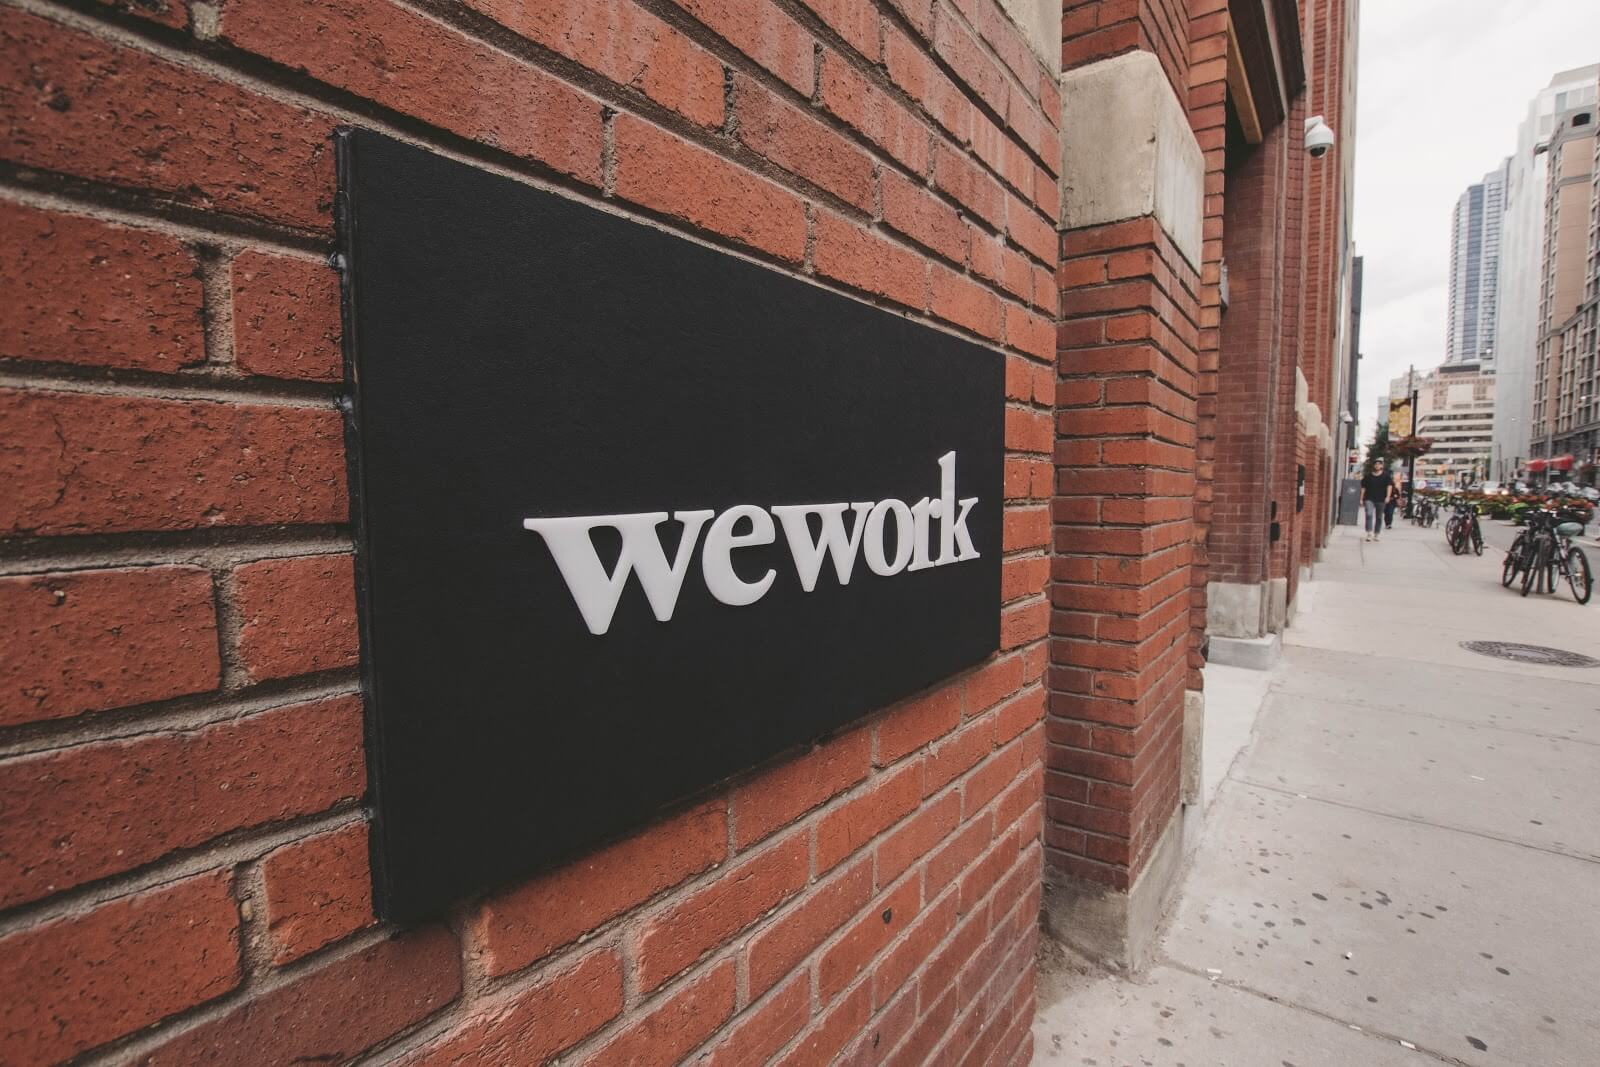 WeWork is a company that understands the importance of coworking spaces